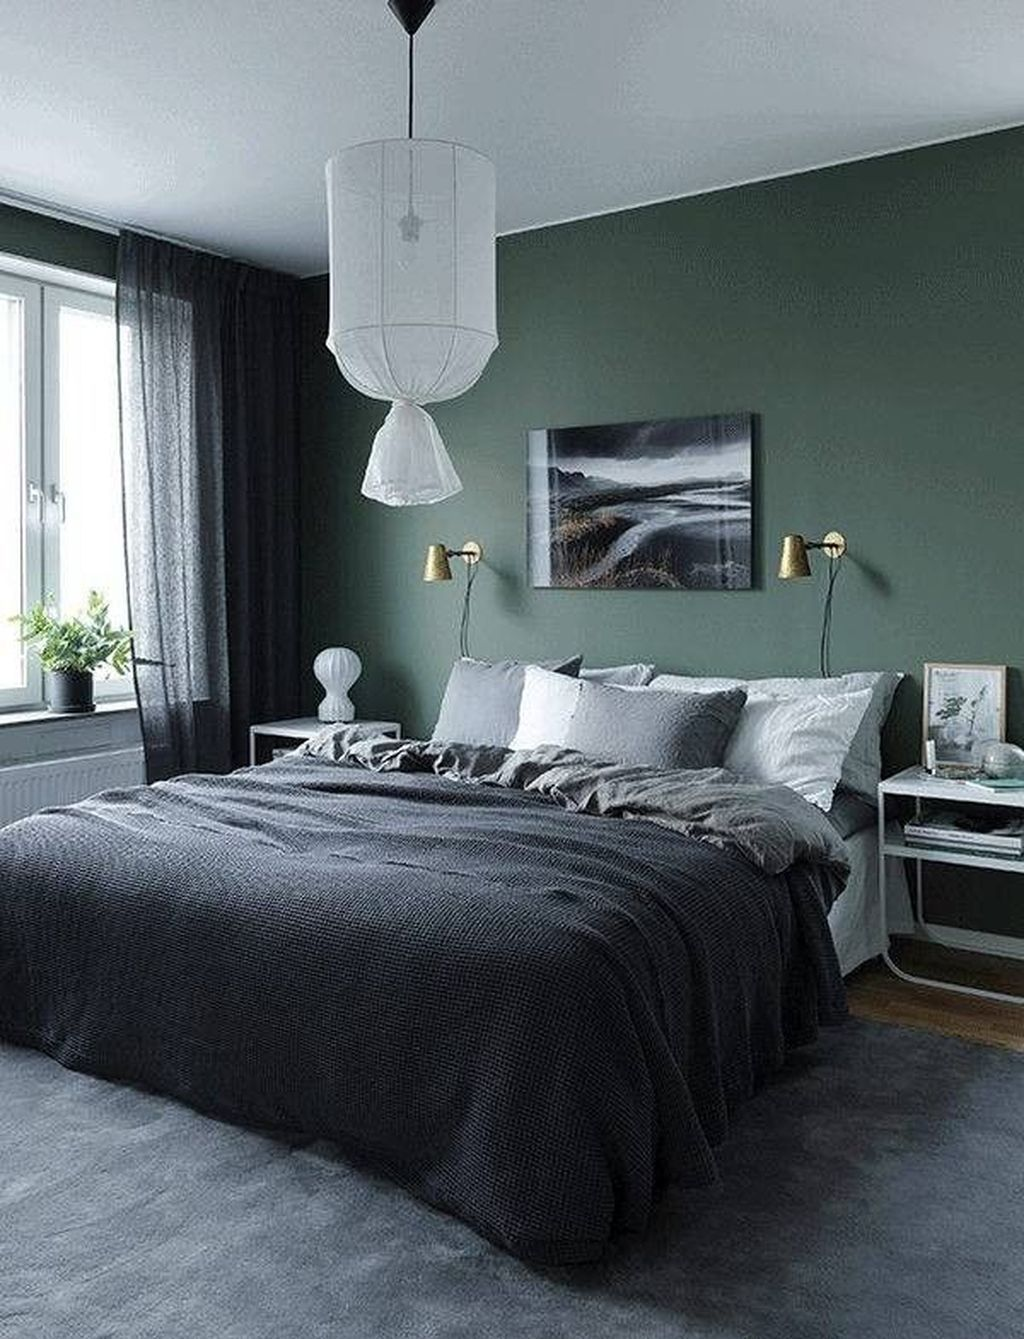 Cool 20 Modern Bedroom Decorating Ideas For Men Modern Bedroom Ideas For Men Ideas For Mens Bedroom Green Bedroom Walls Home Decor Bedroom Bedroom Green